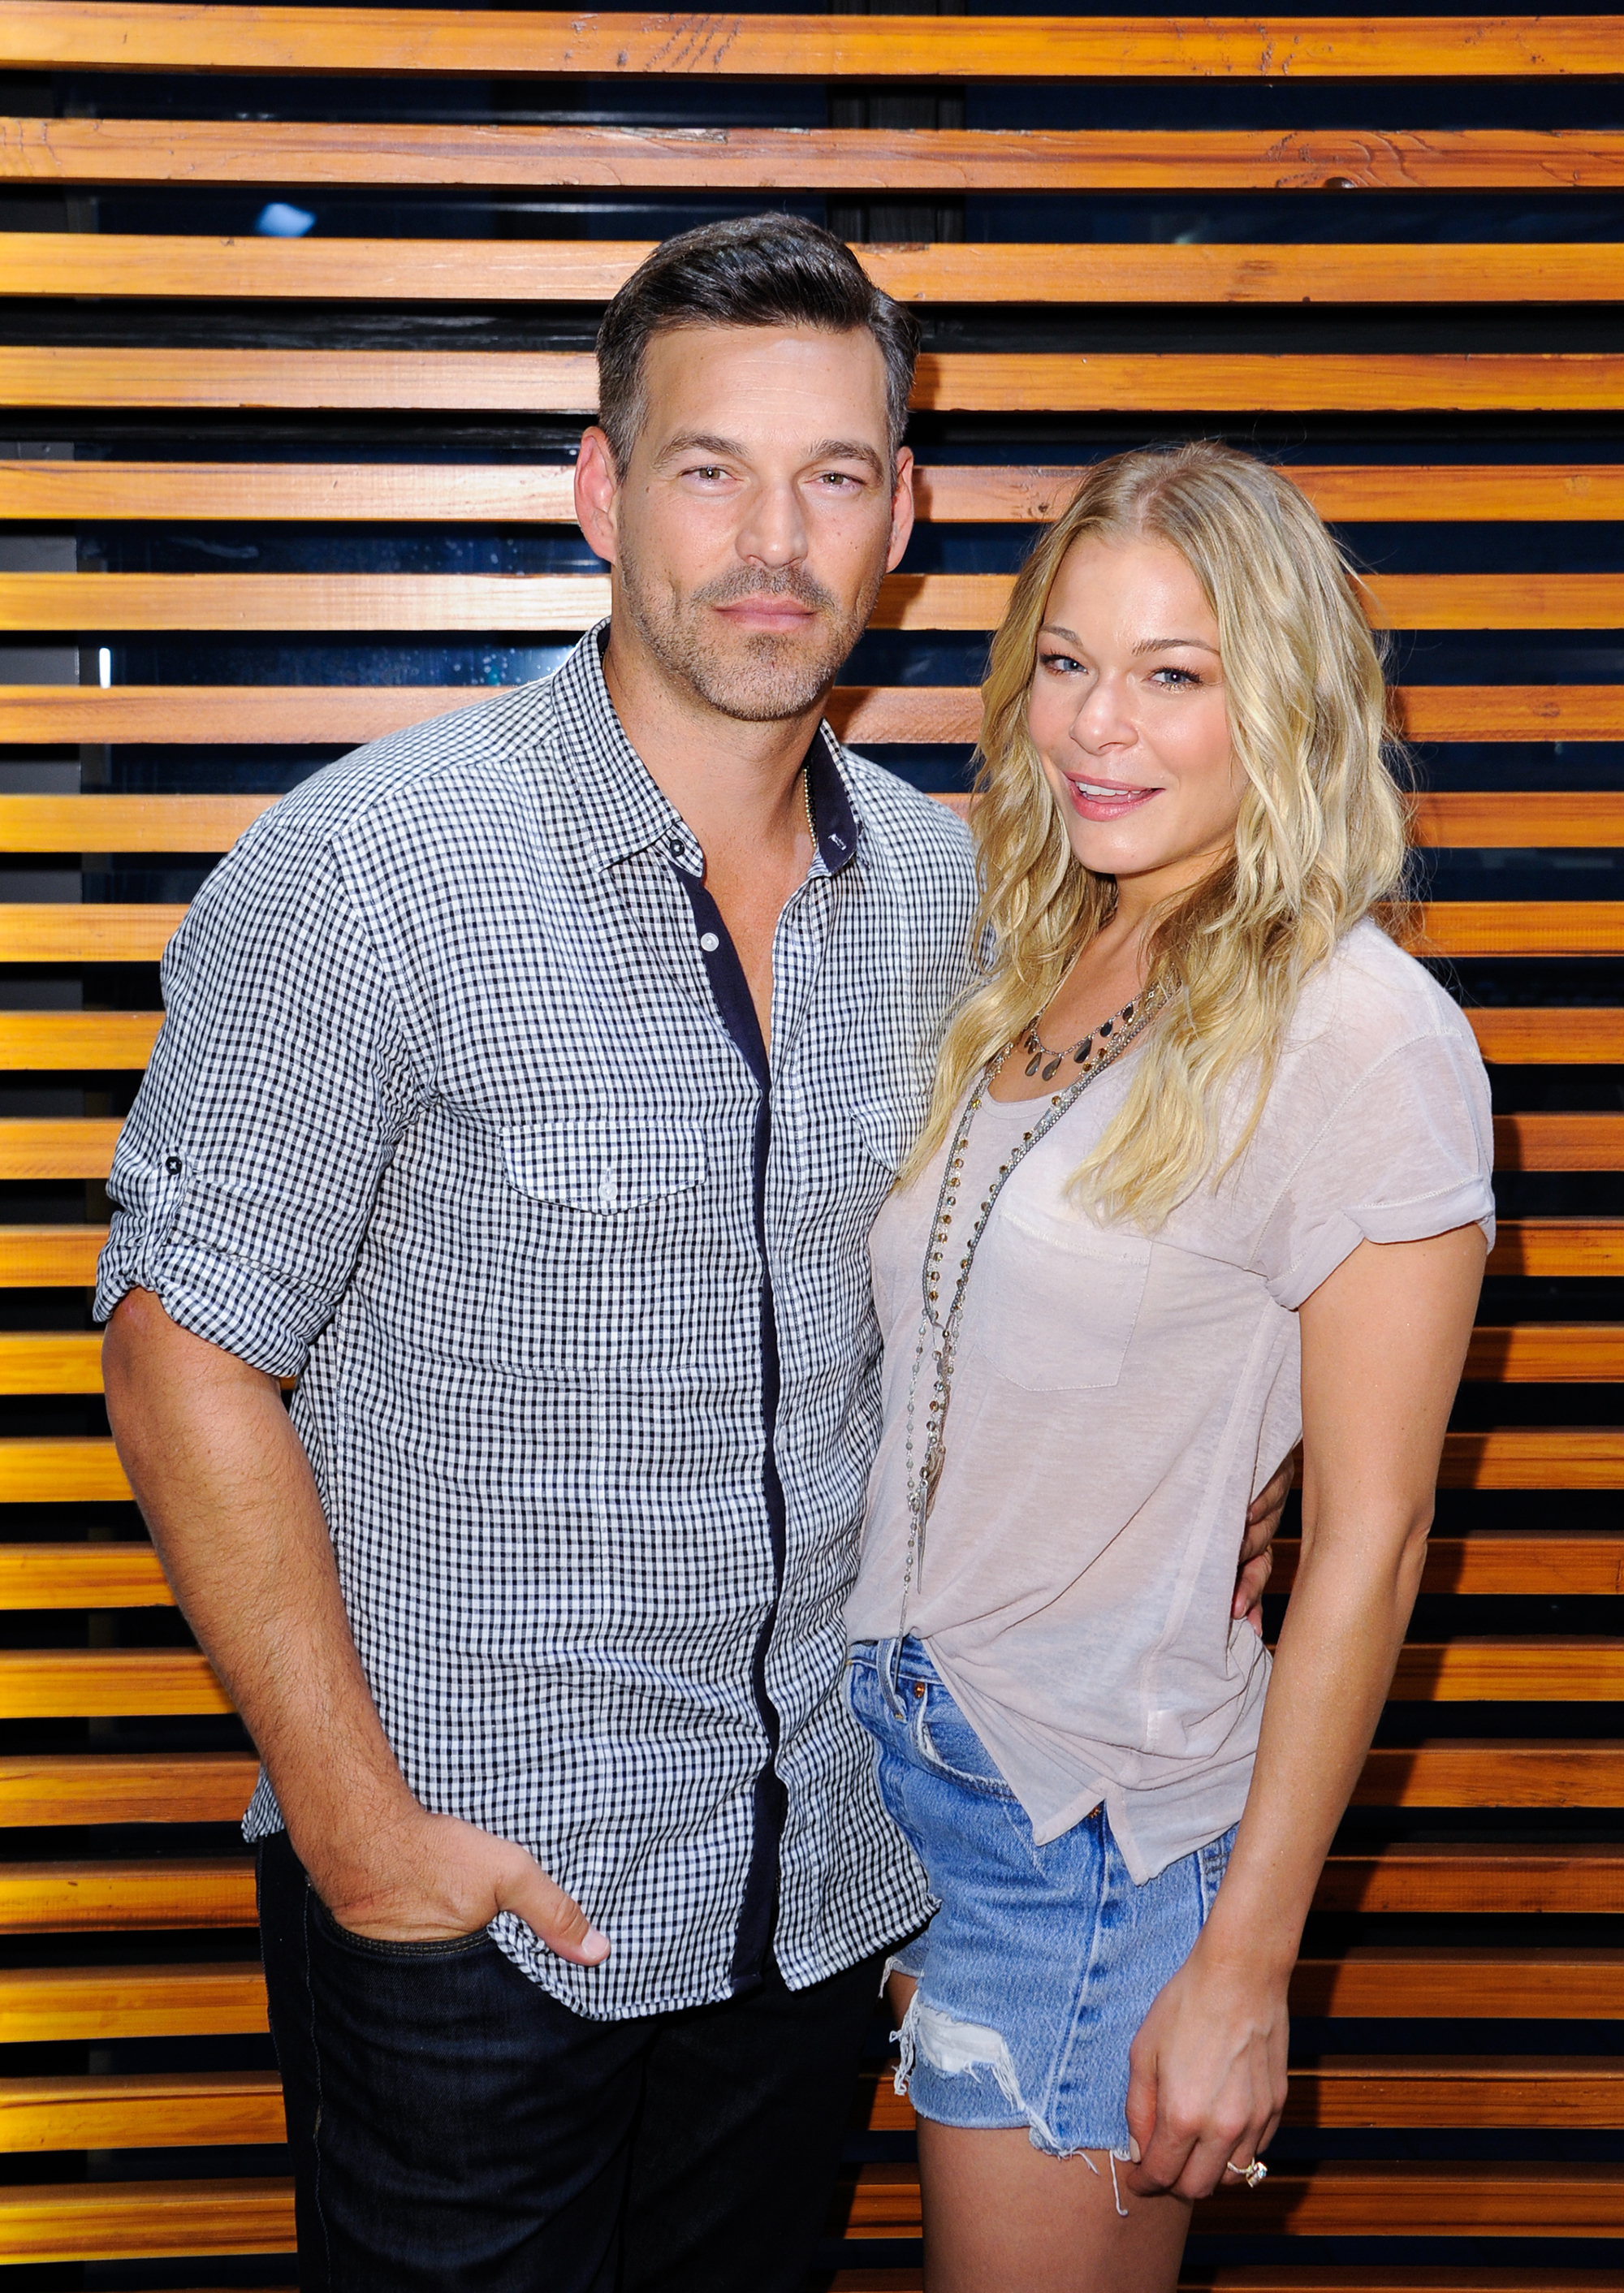 """Revisit Brandi Glanville's Feud With Eddie Cibrian and LeAnn Rimes - Rimes said she had no regrets about her affair with Cibrian. """"It happens every day to so many people,"""" she said in an interview with ABC News' Robin Roberts ."""